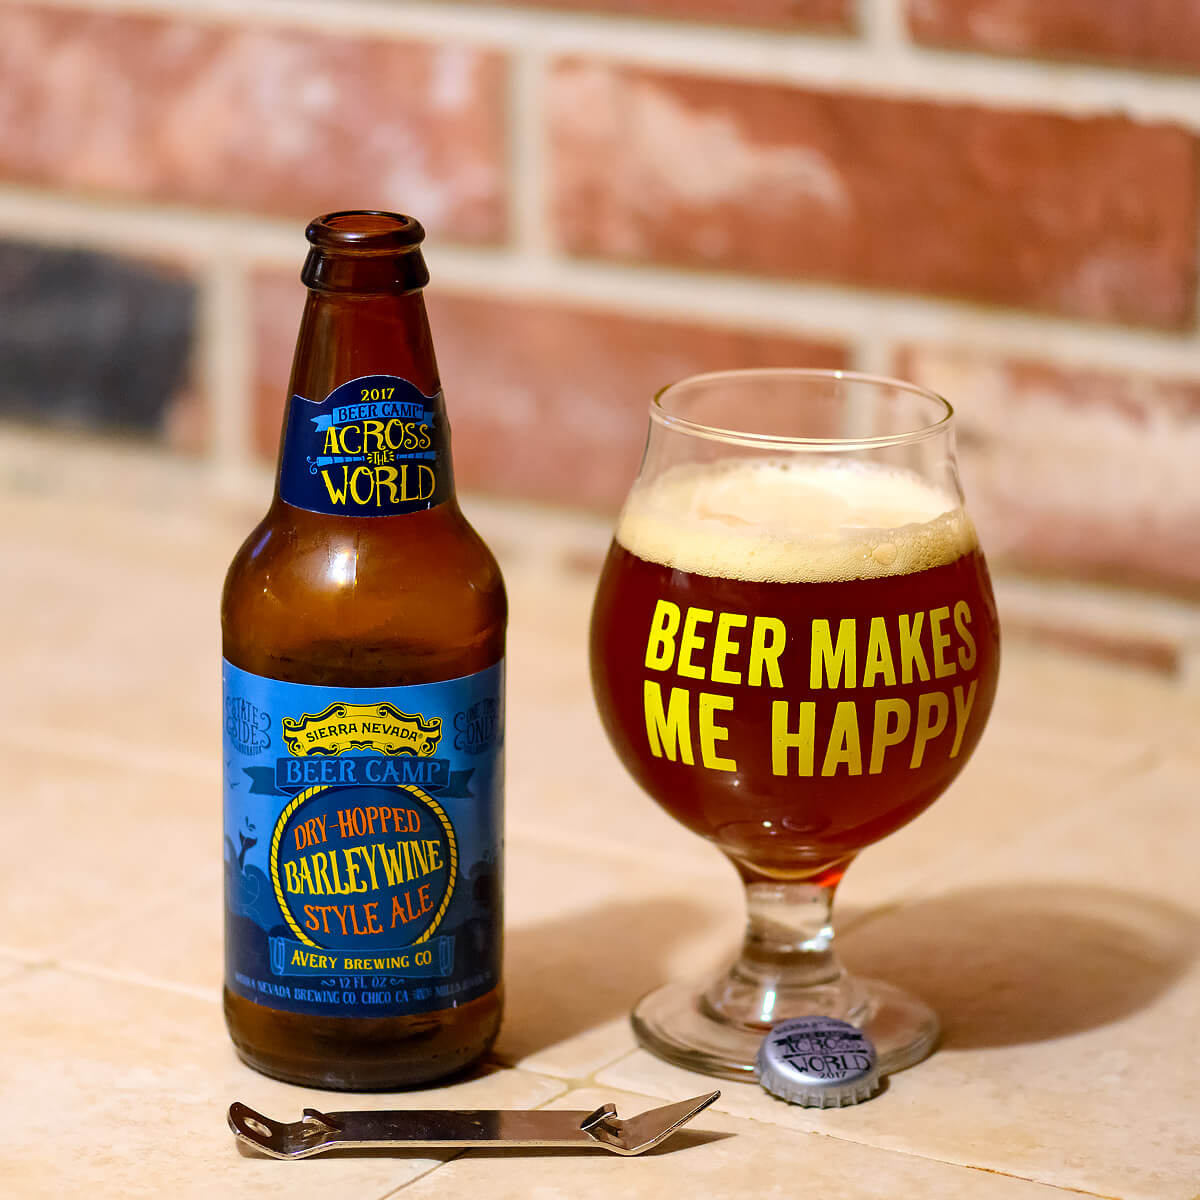 Dry-Hopped Barleywine Style Ale by Sierra Nevada Brewing Co. and Avery Brewing Co.